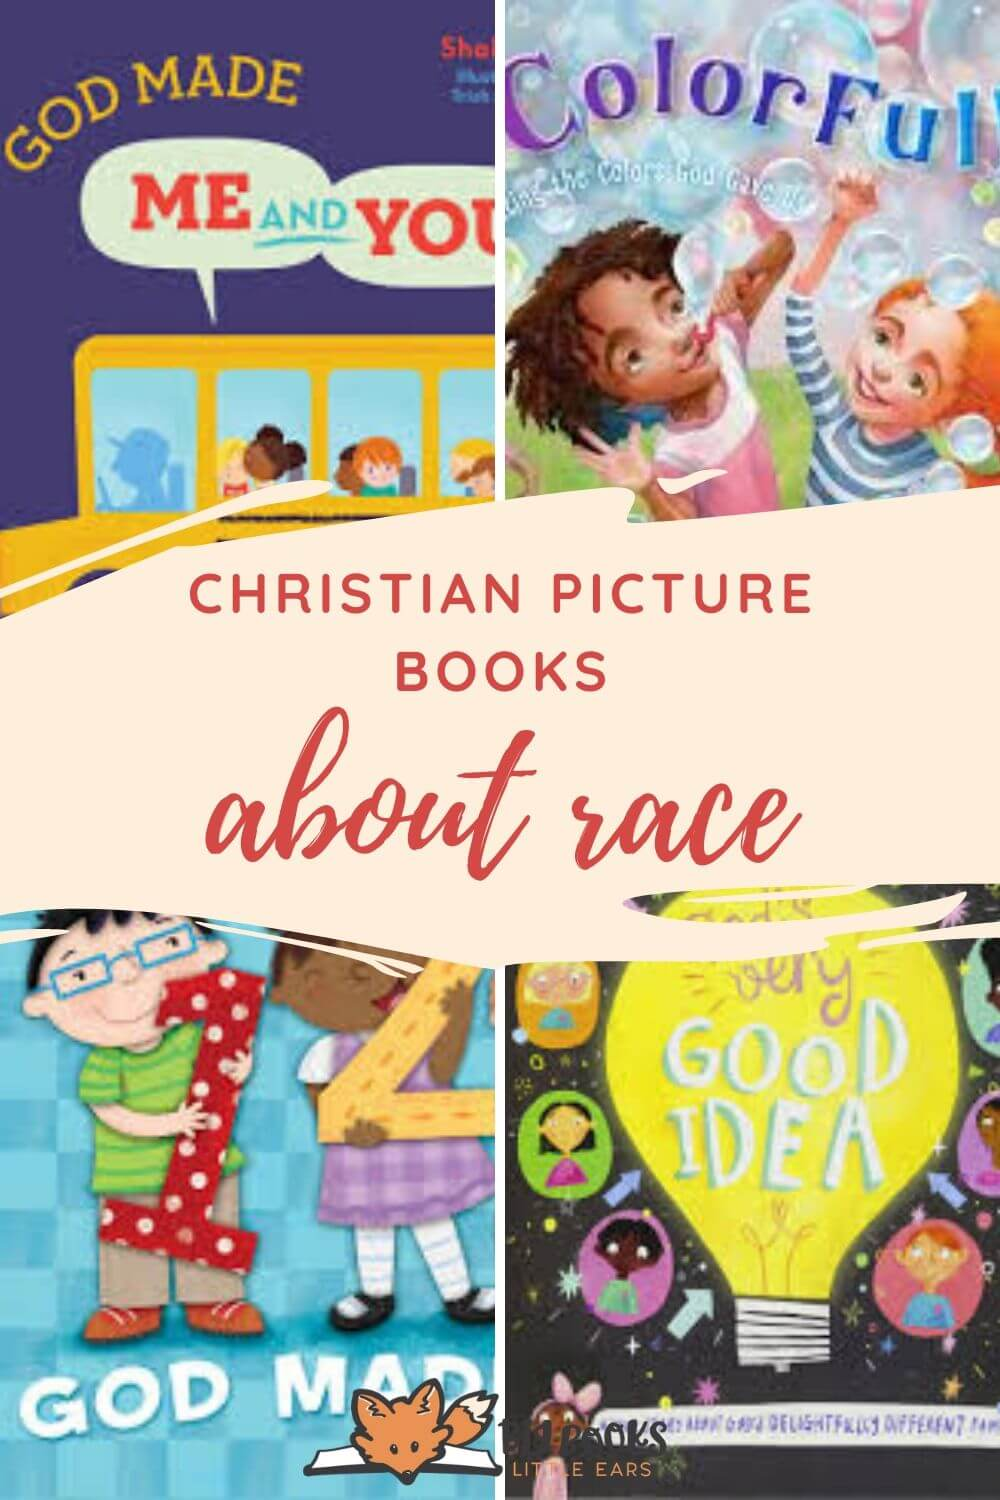 Christian picture books about race and ethnic diversity